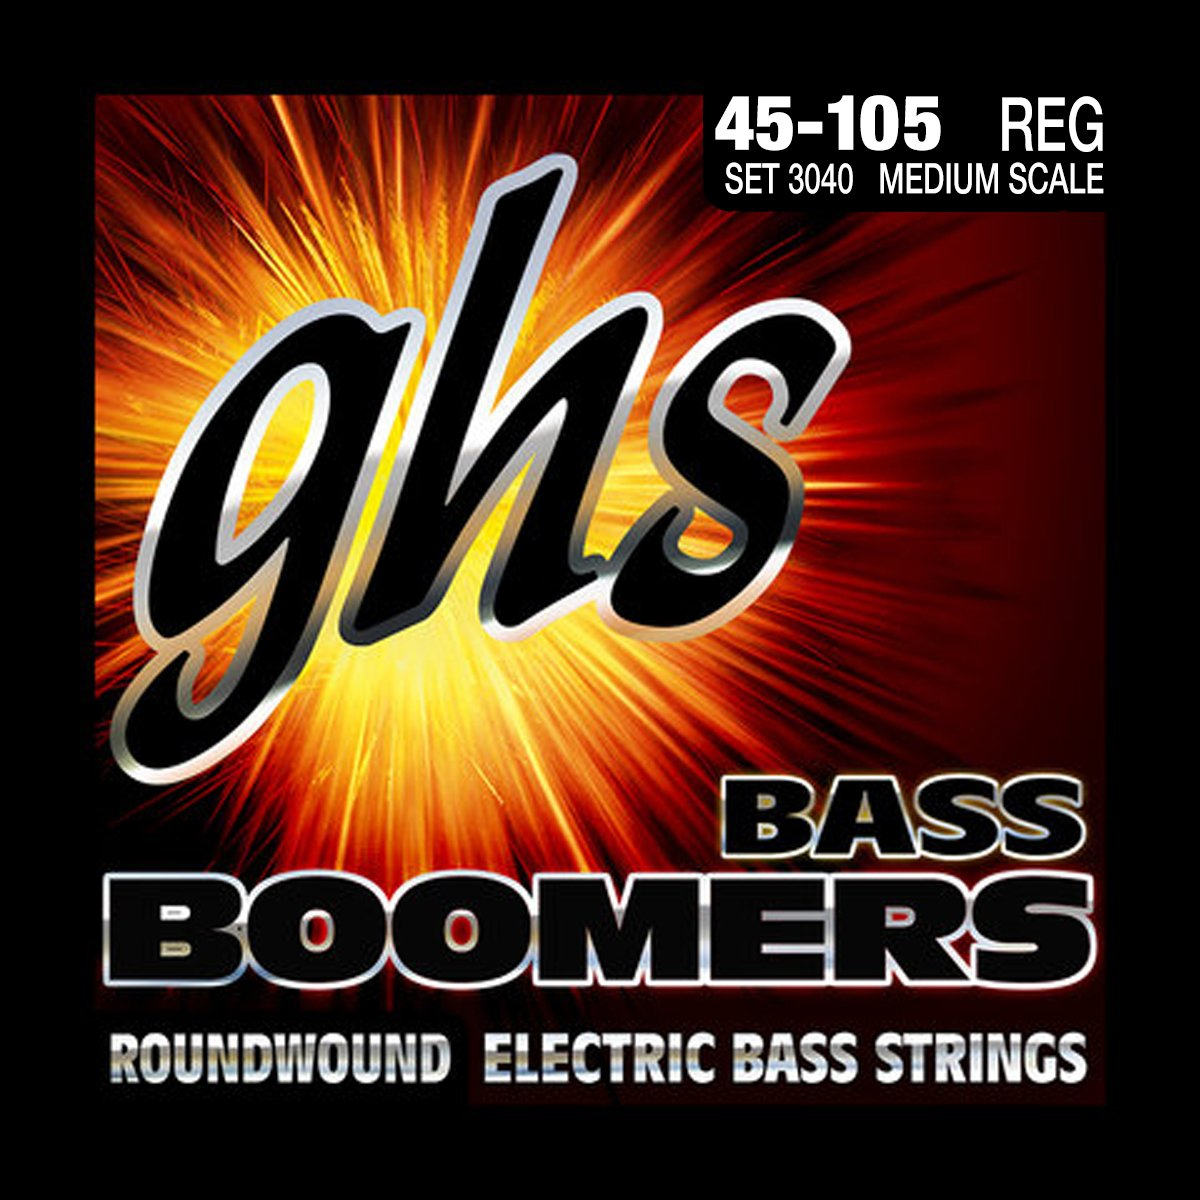 GHS 3040 Medium Scale Roundwound Bass strings 45-105